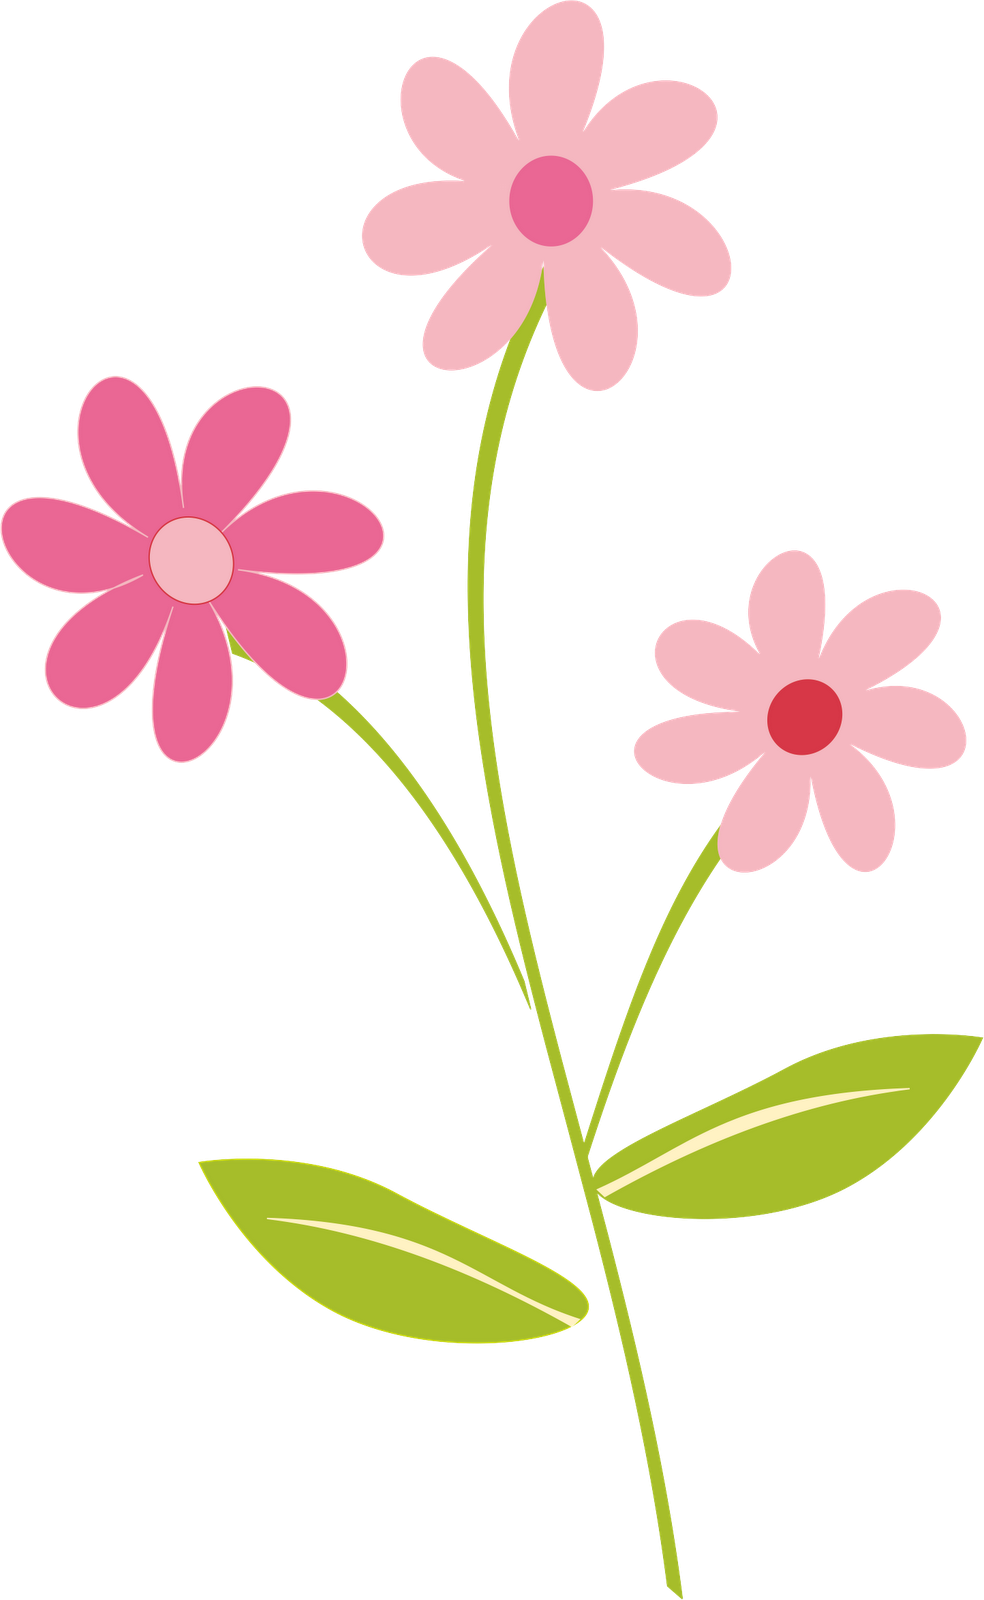 Border clipart png. Flowers pictures transparentpng